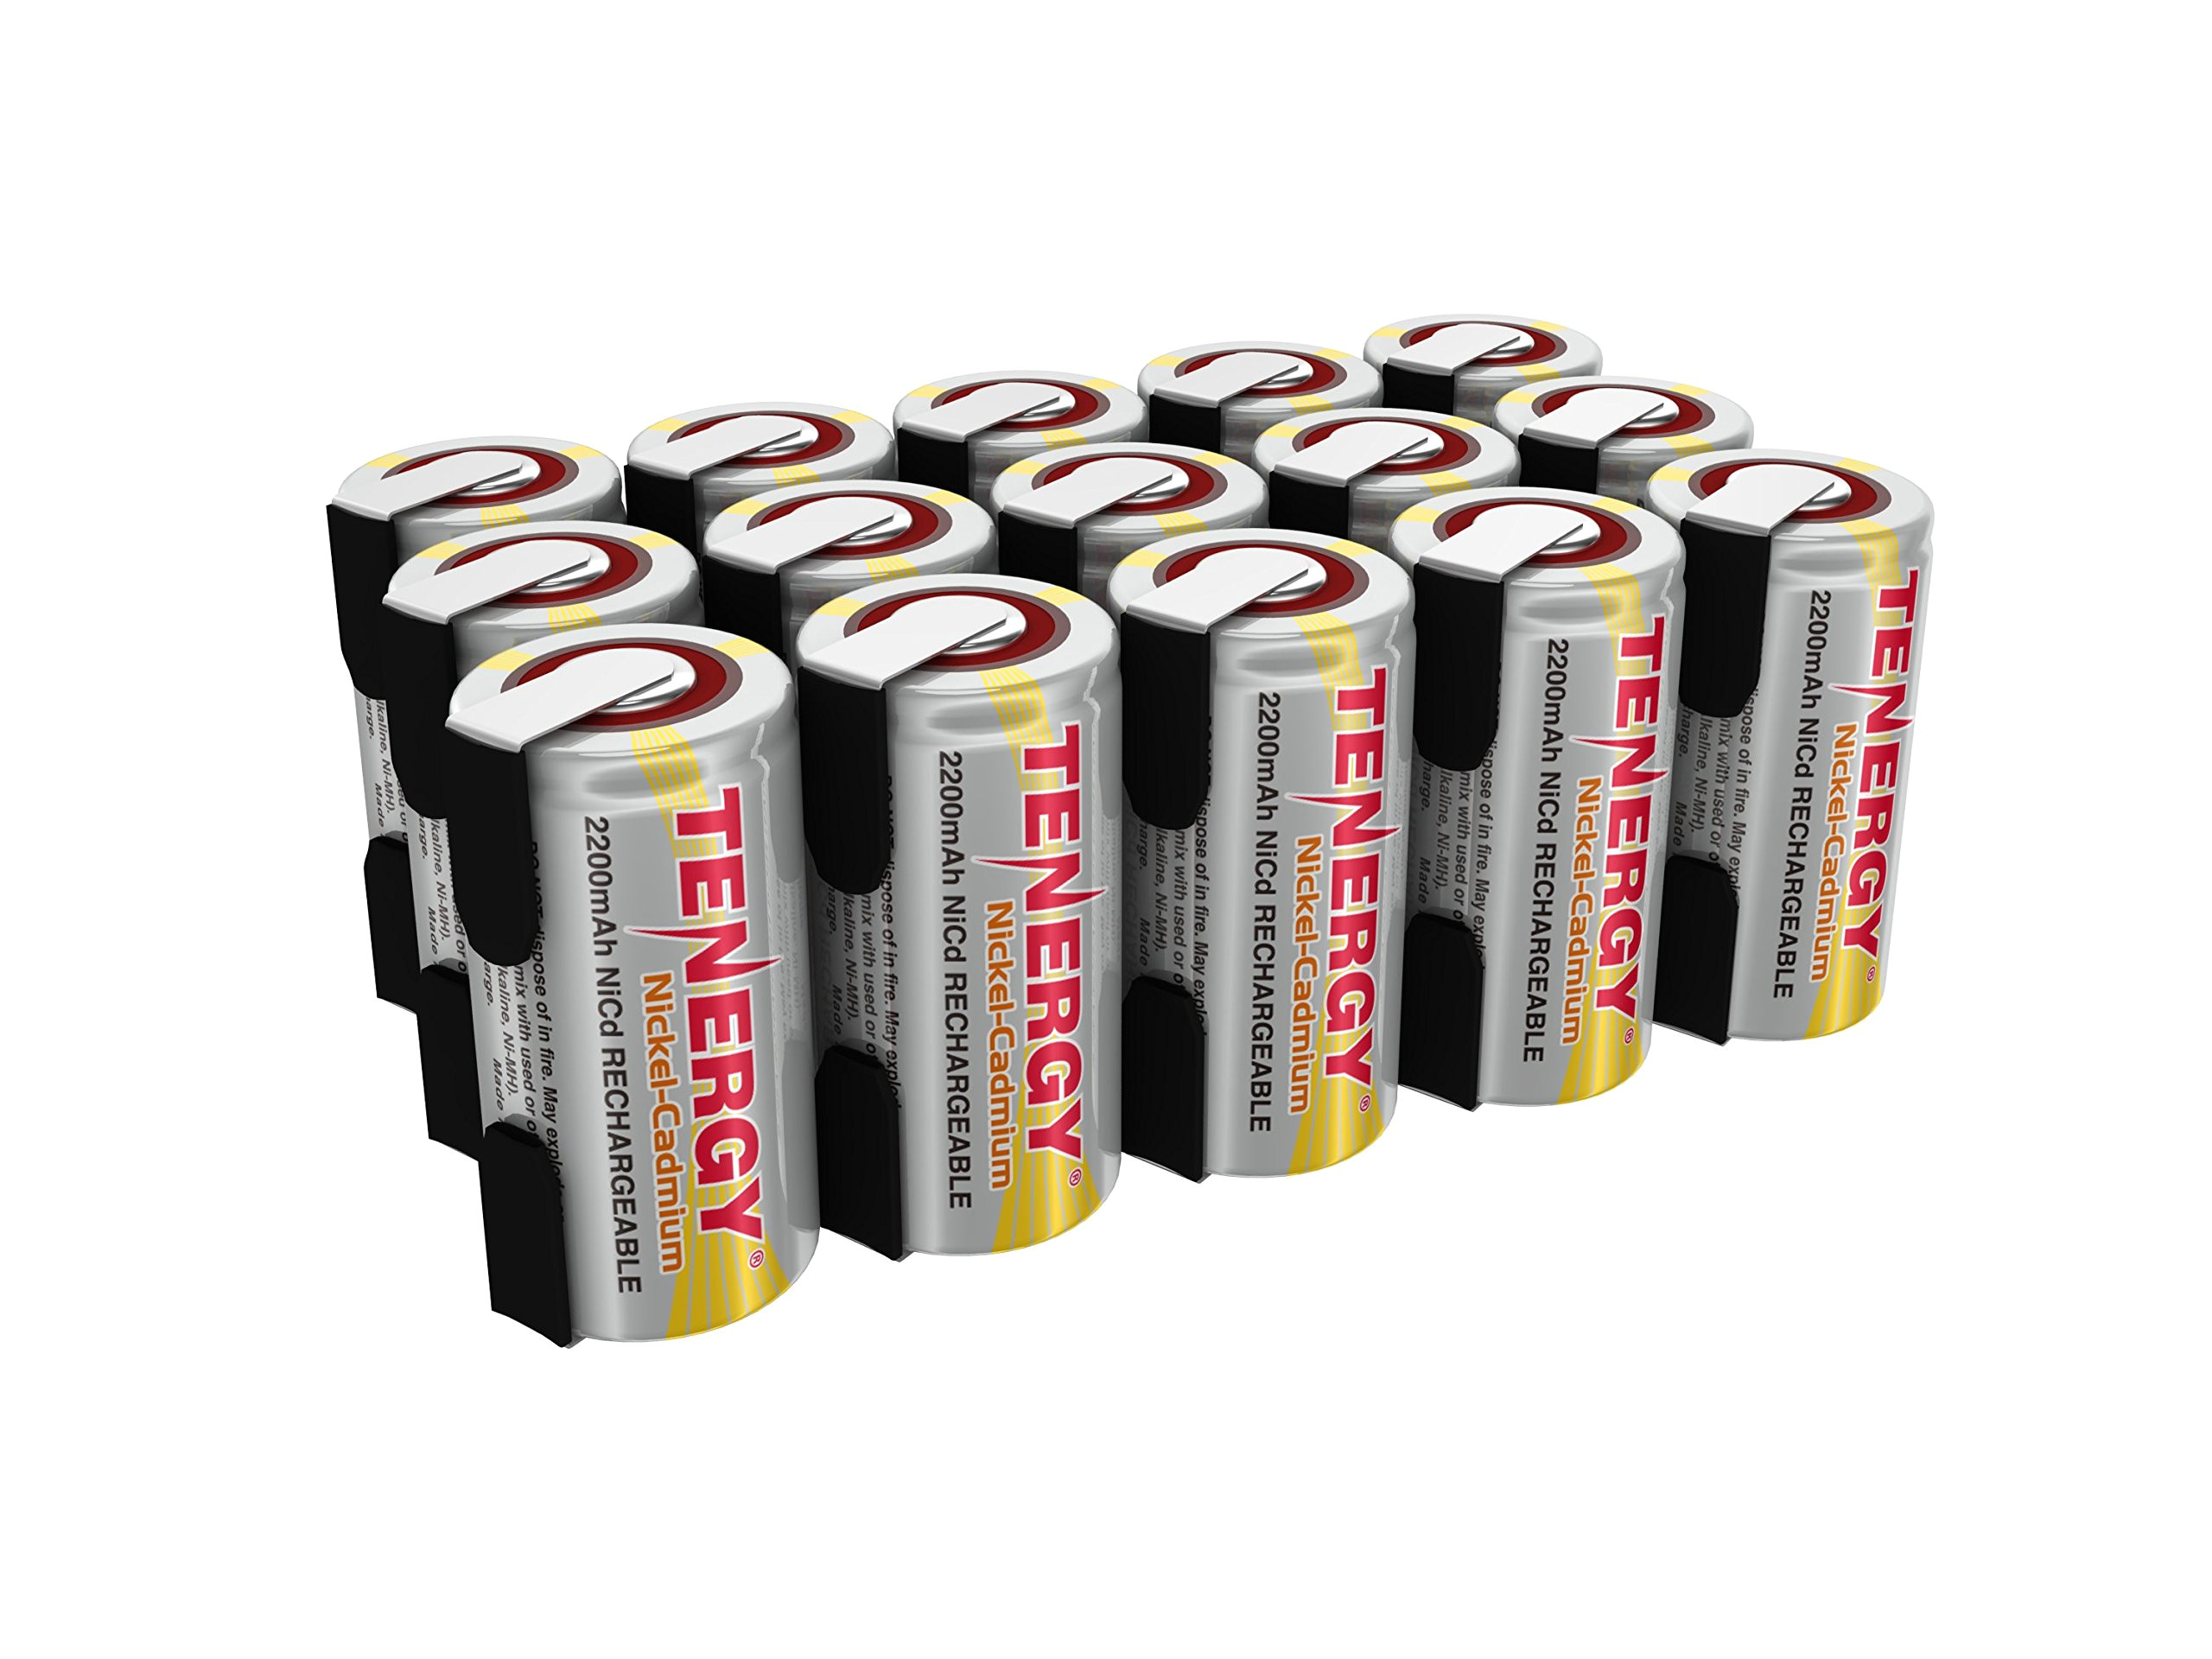 tenergy 2200mah sub c nicd battery for power tools 1 2v flat top rechargeable sub